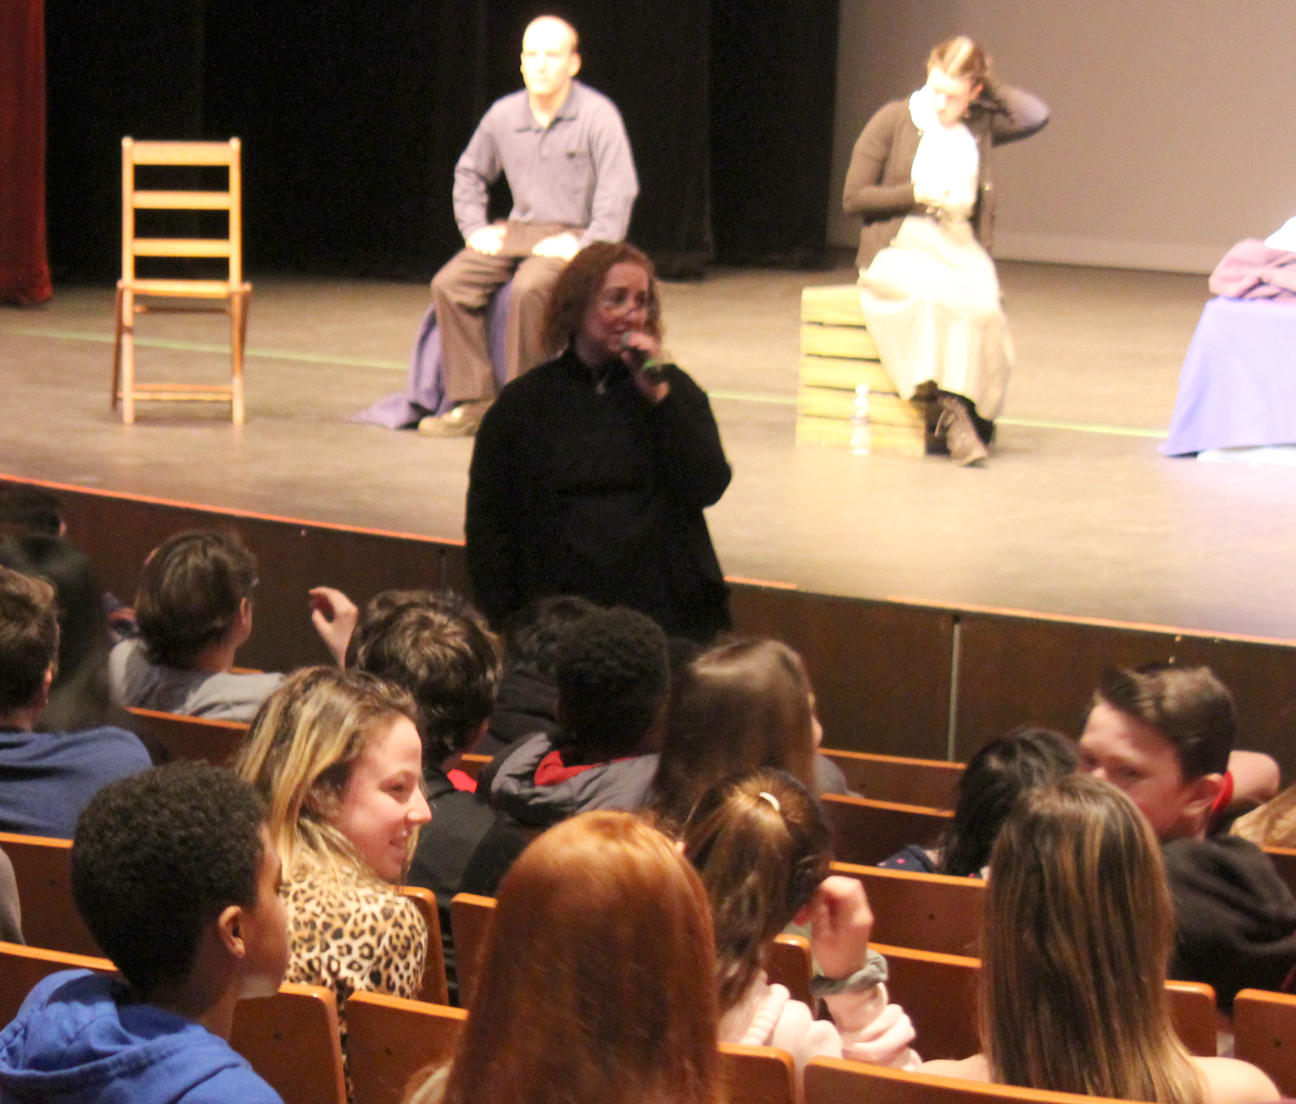 The JCC's Freyda Schneider (center) introduced the production and led a question and answer session afterwards.